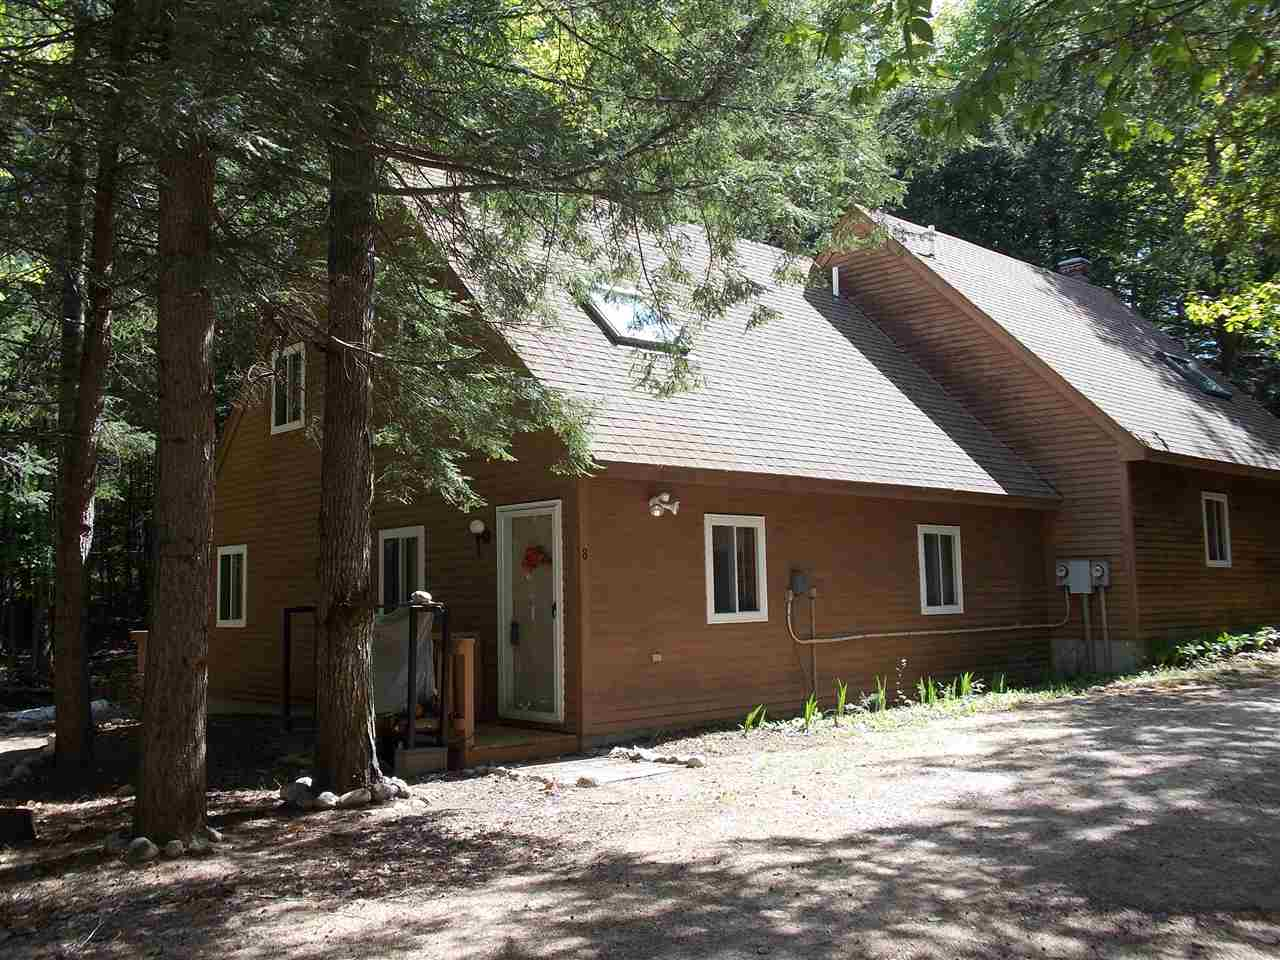 Minutes to Attitash, this townhouse is waiting for you to come relax by the woodstove. The mudroom entry with door to the open living space including living room, dining room and kitchen. First floor master bedroom with private full bath.  There are 2 ample sized bedrooms with skylights on the second floor and a 3/4 bath and laundry room. There is plenty of parking, a nice sized deck off the back overlooking a small brook. This great unit comes fully furnished for your convenience. Don't miss this great offering.